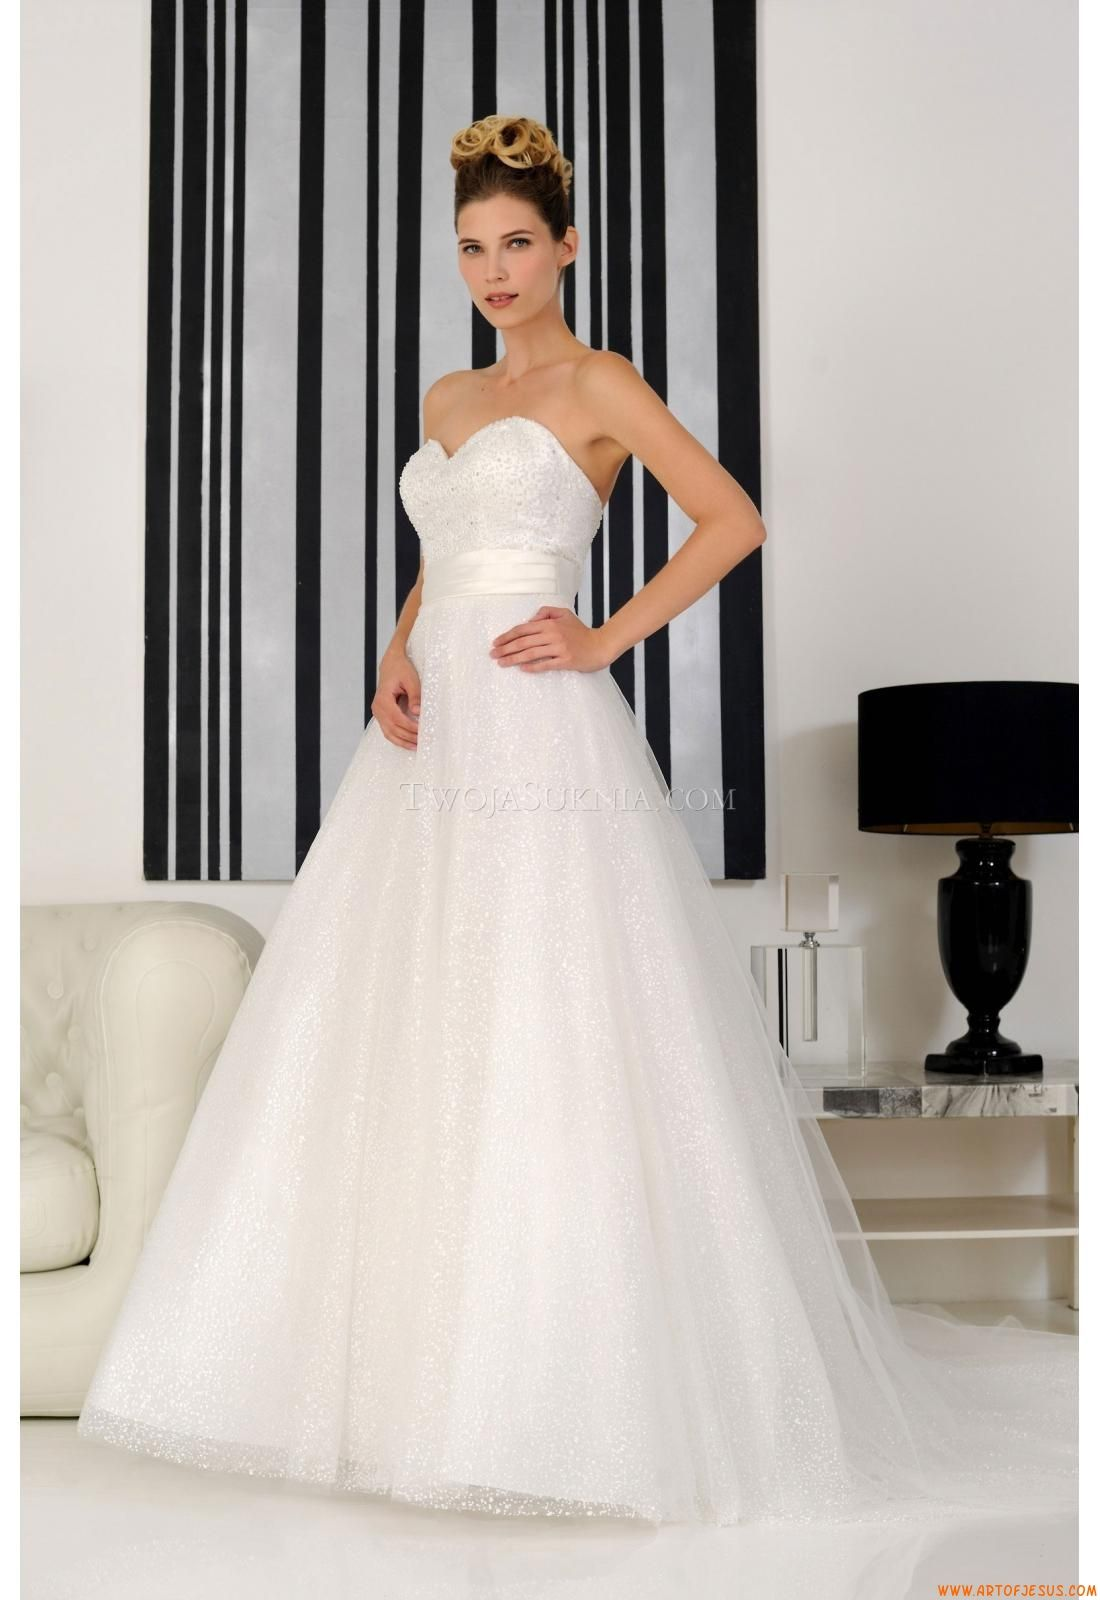 Elegant Sweetheart Ball Gown Wedding Dress China Rosa Couture Denia 2014 Dresses OnlineDresses 2014American